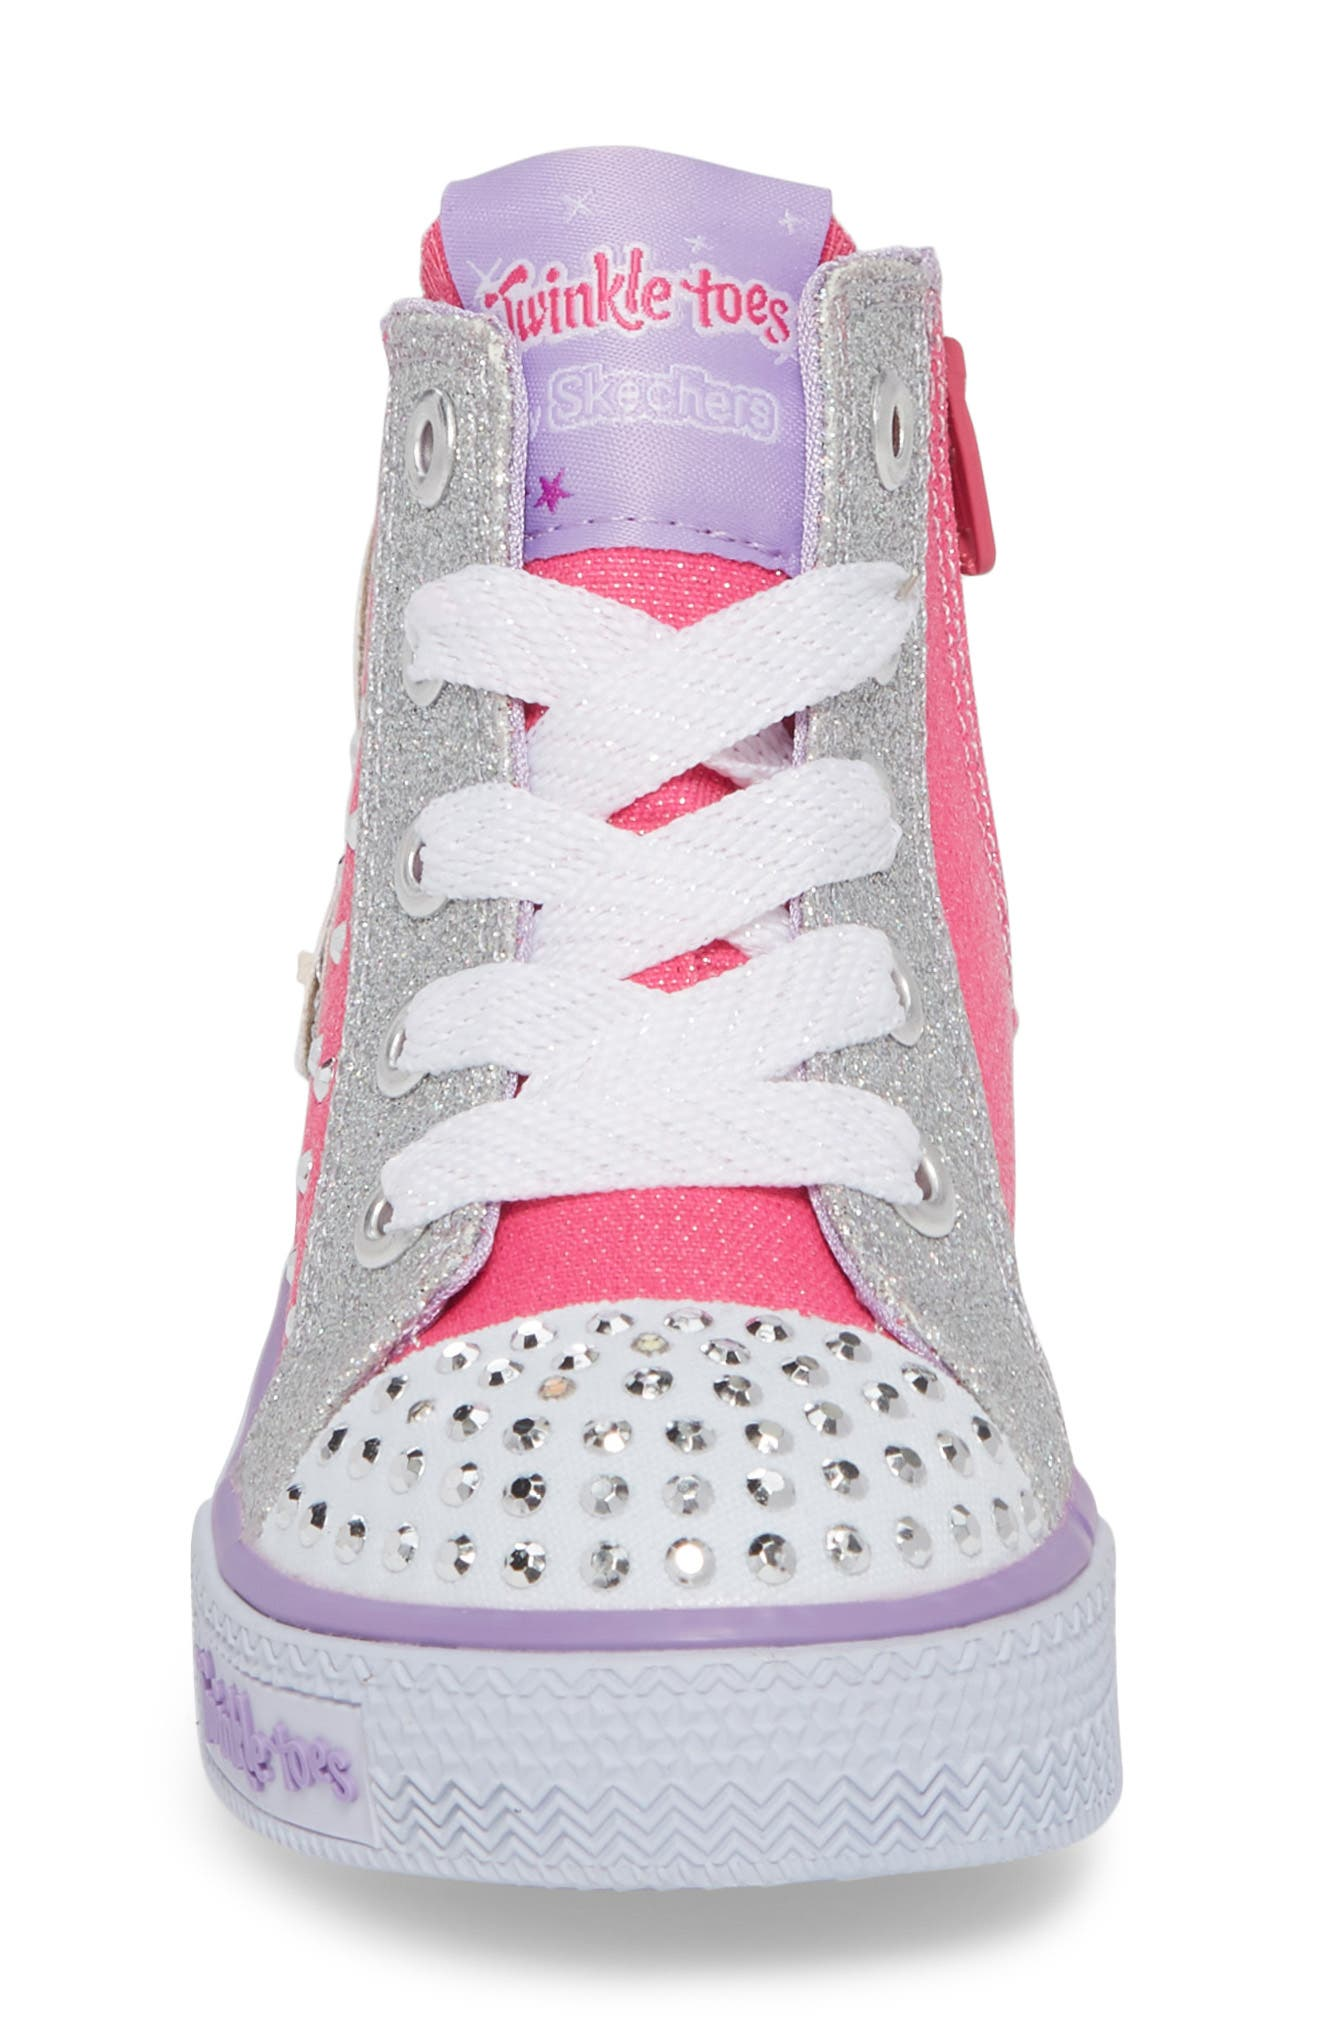 Twinkle Toes Shuffles Fooling Flutters Light-Up High Top Sneaker,                             Alternate thumbnail 4, color,                             Hot Pink/ Silver